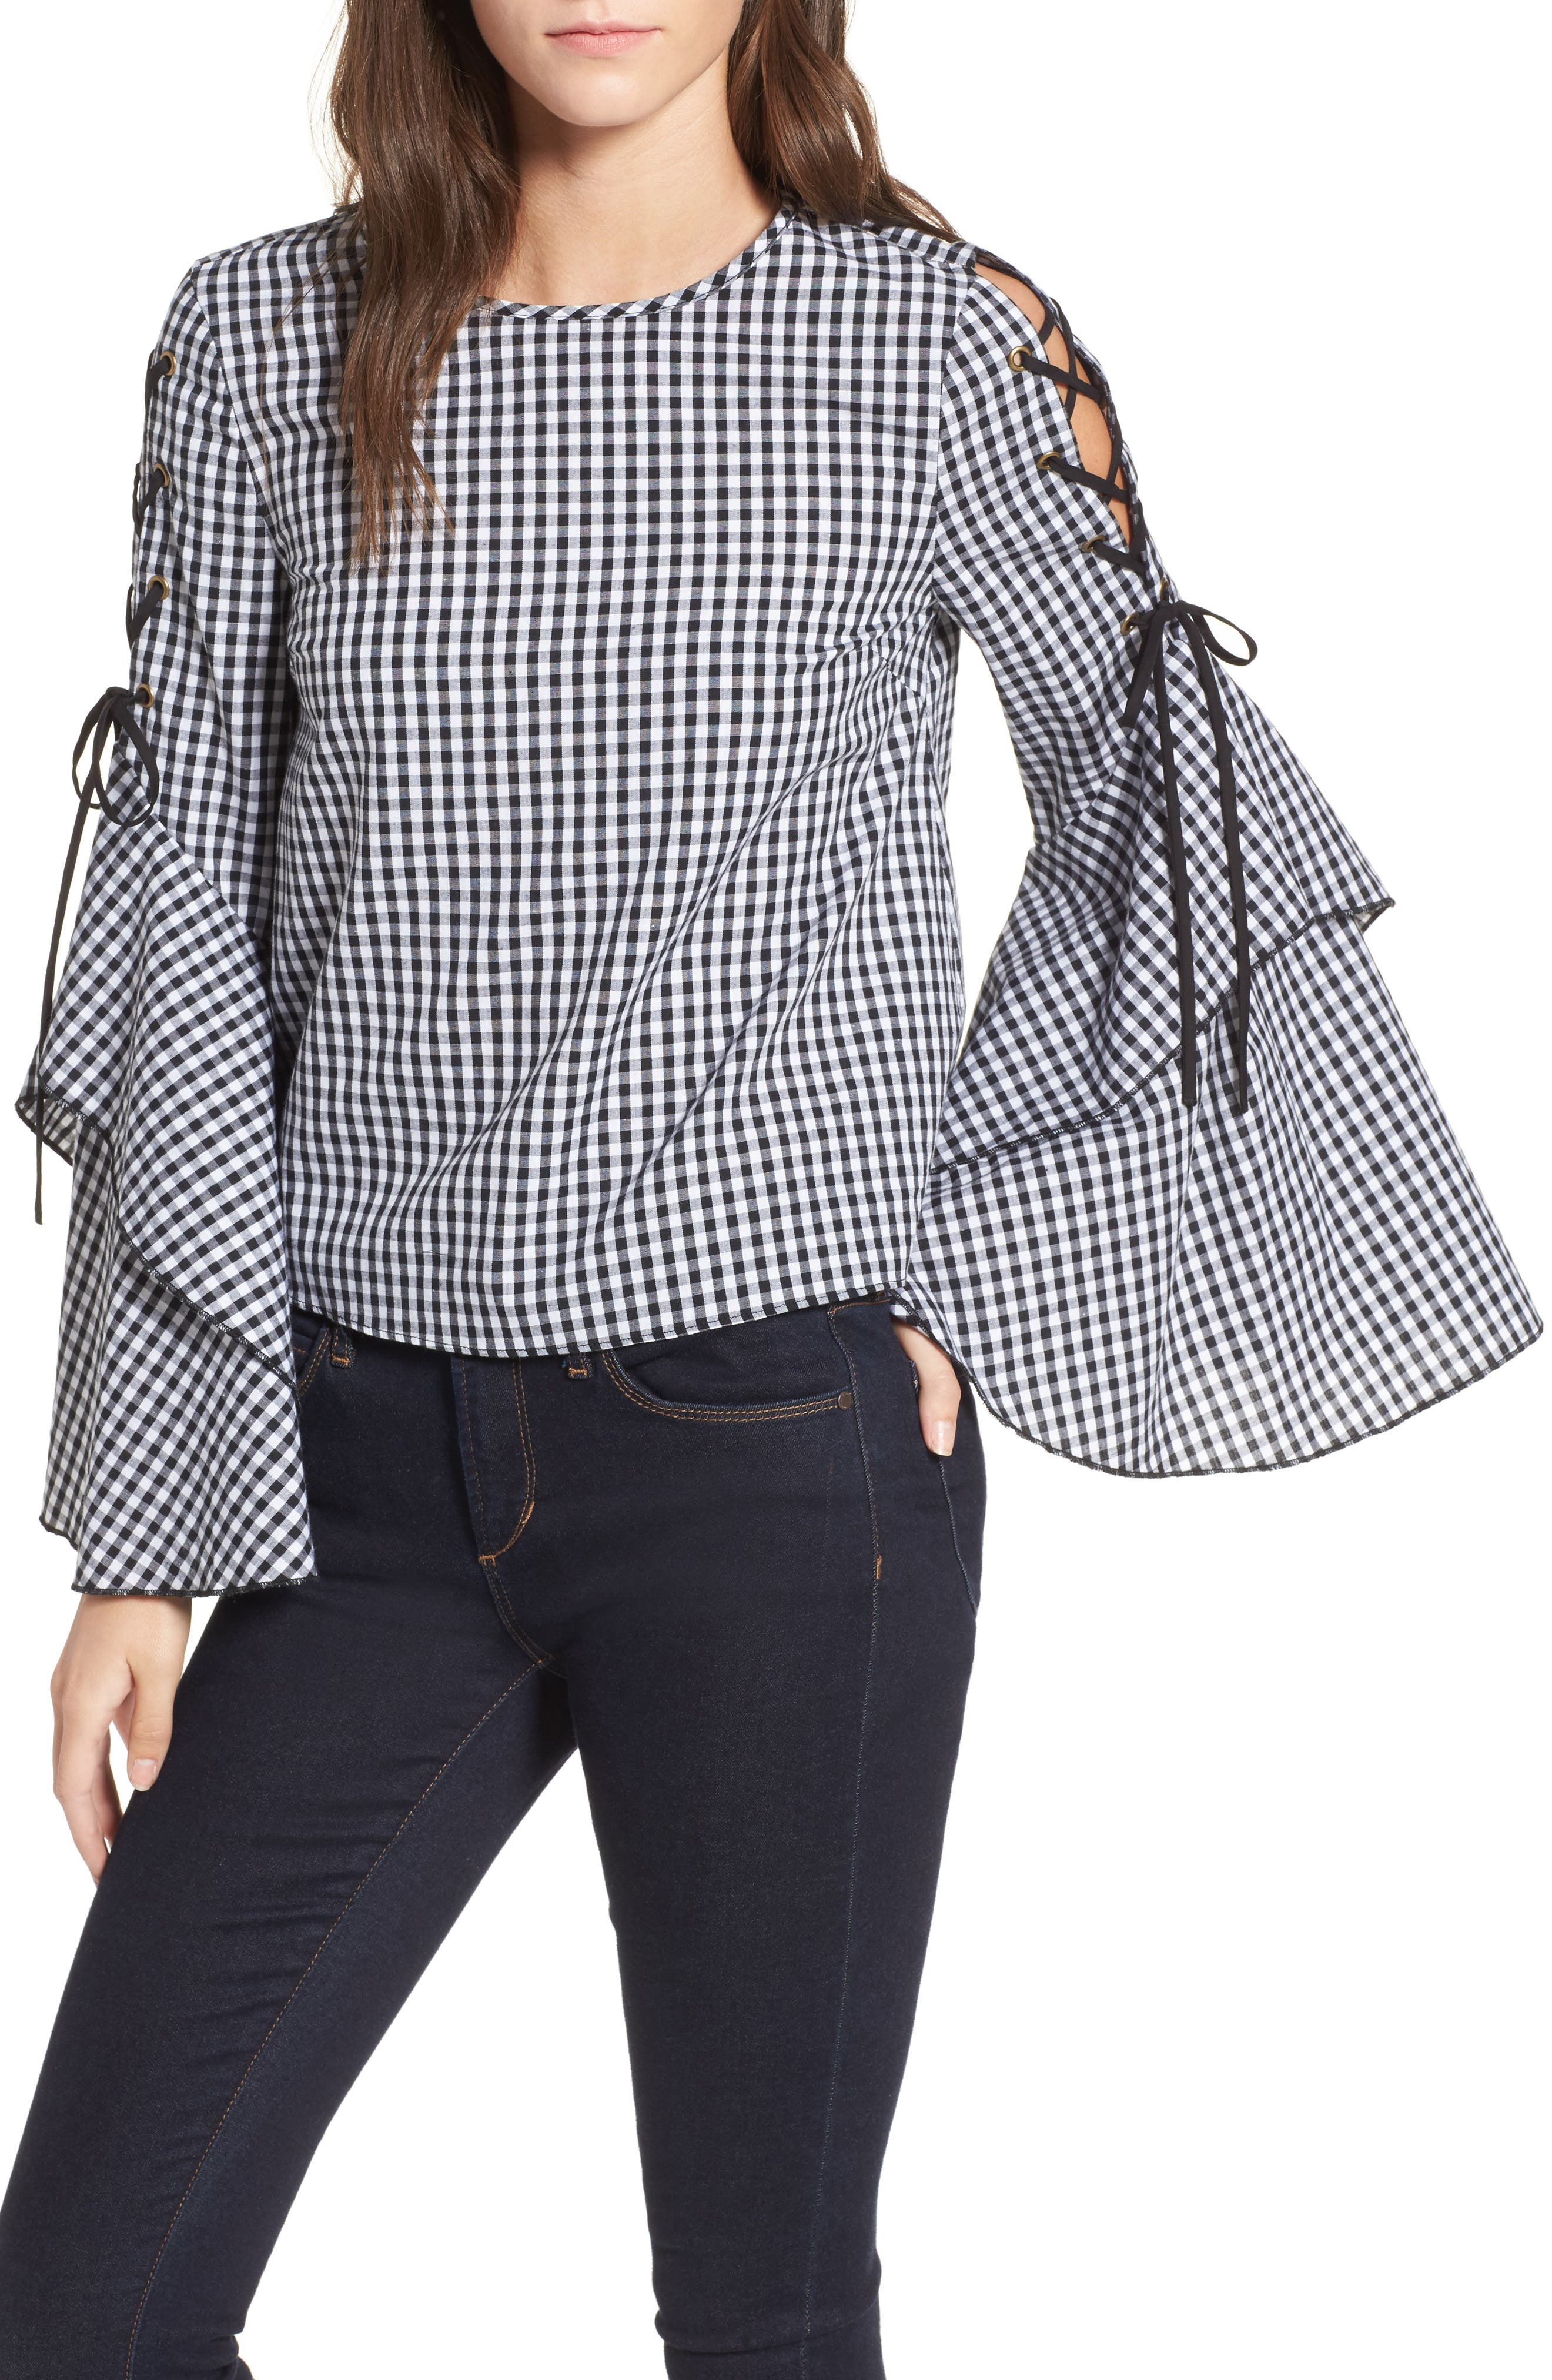 Alternate Image 1 Selected - STOREE Ruffle Sleeve Gingham Top